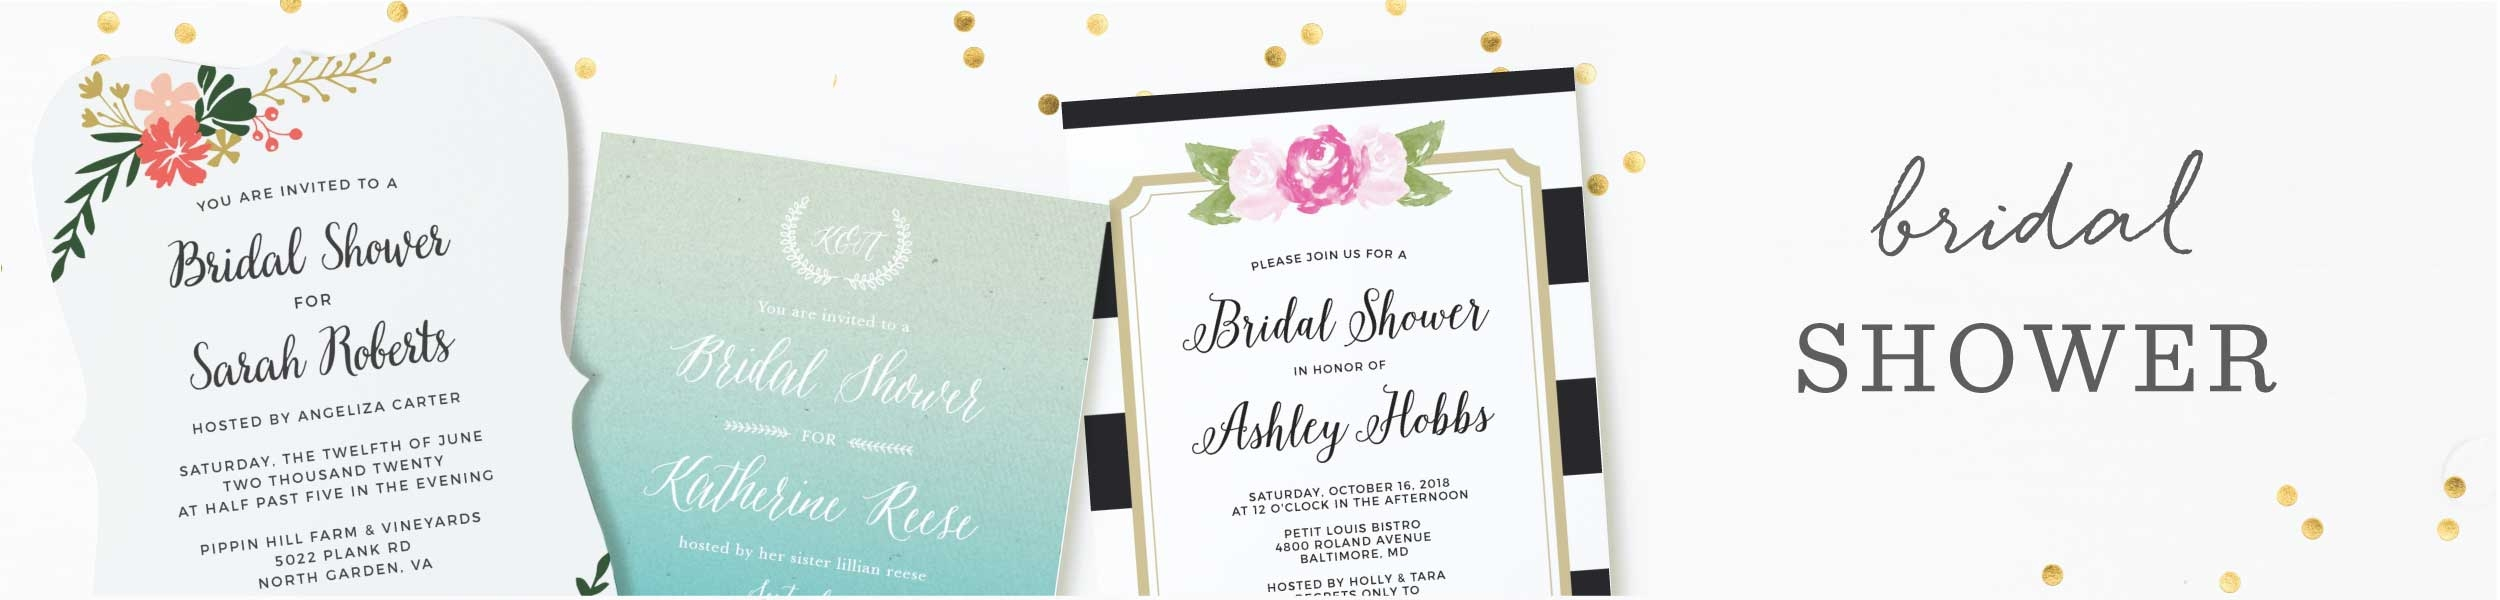 84b8e6ca54fc Bridal Shower Invitations   Wedding Shower Invitations